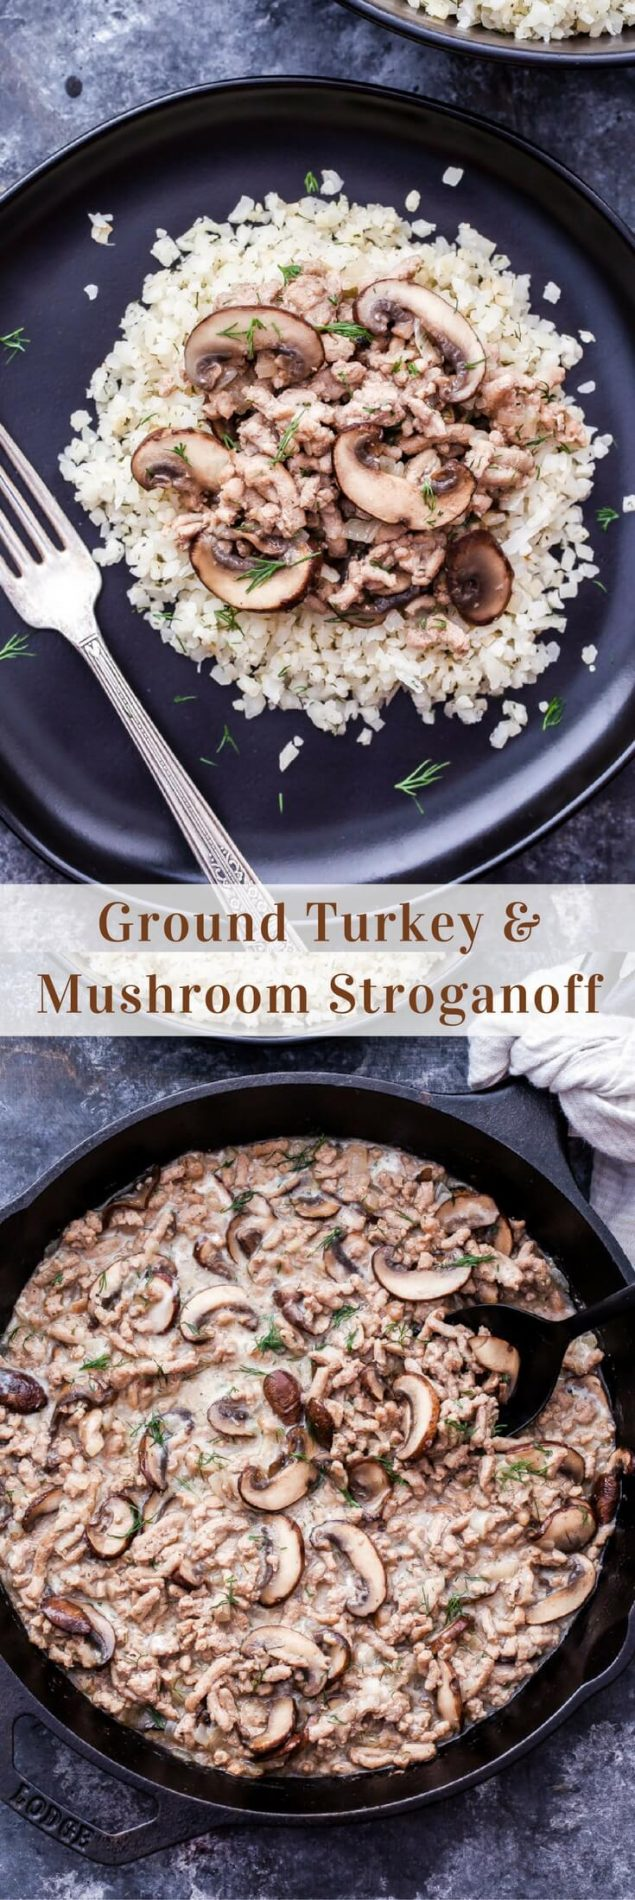 You'll love this lightened up, affordable and easy to make Ground Turkey and Mushroom Stroganoff! An easy and healthy, comfort food weeknight dinner. #stroganoff #dinner #easyrecipe #glutenfree #mushroom #lowcarb #groundturkey